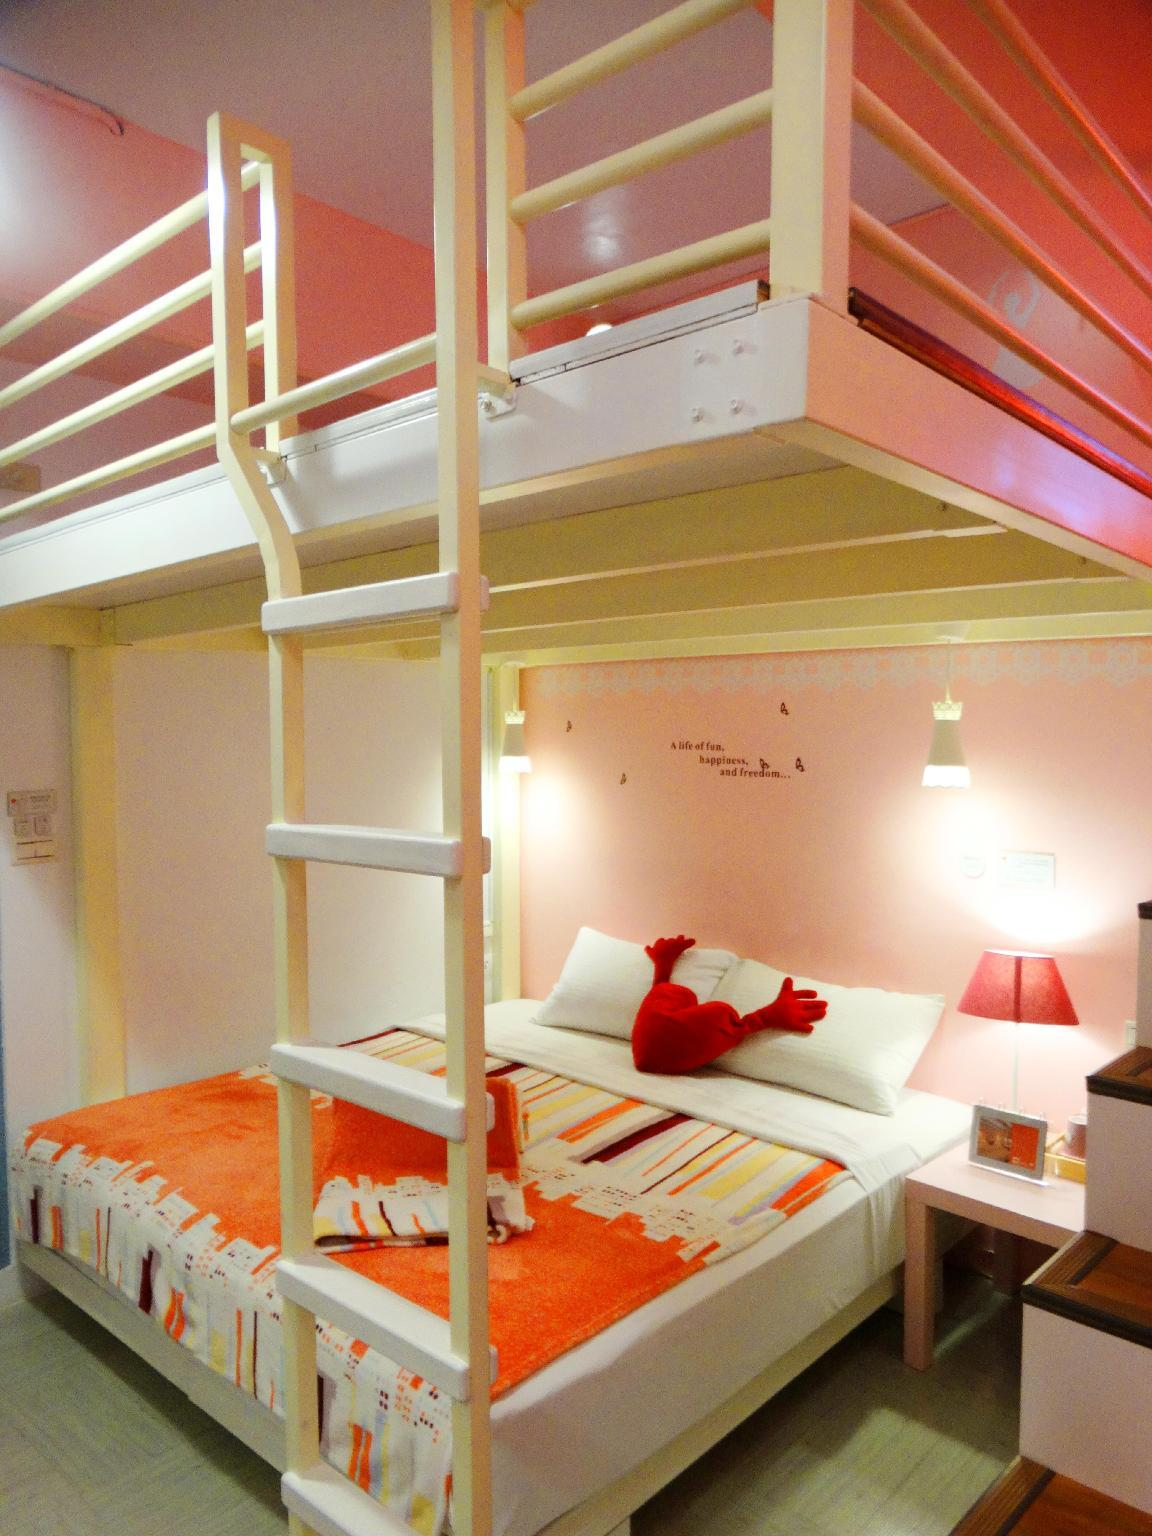 Kamar Loteng (Attic Room)